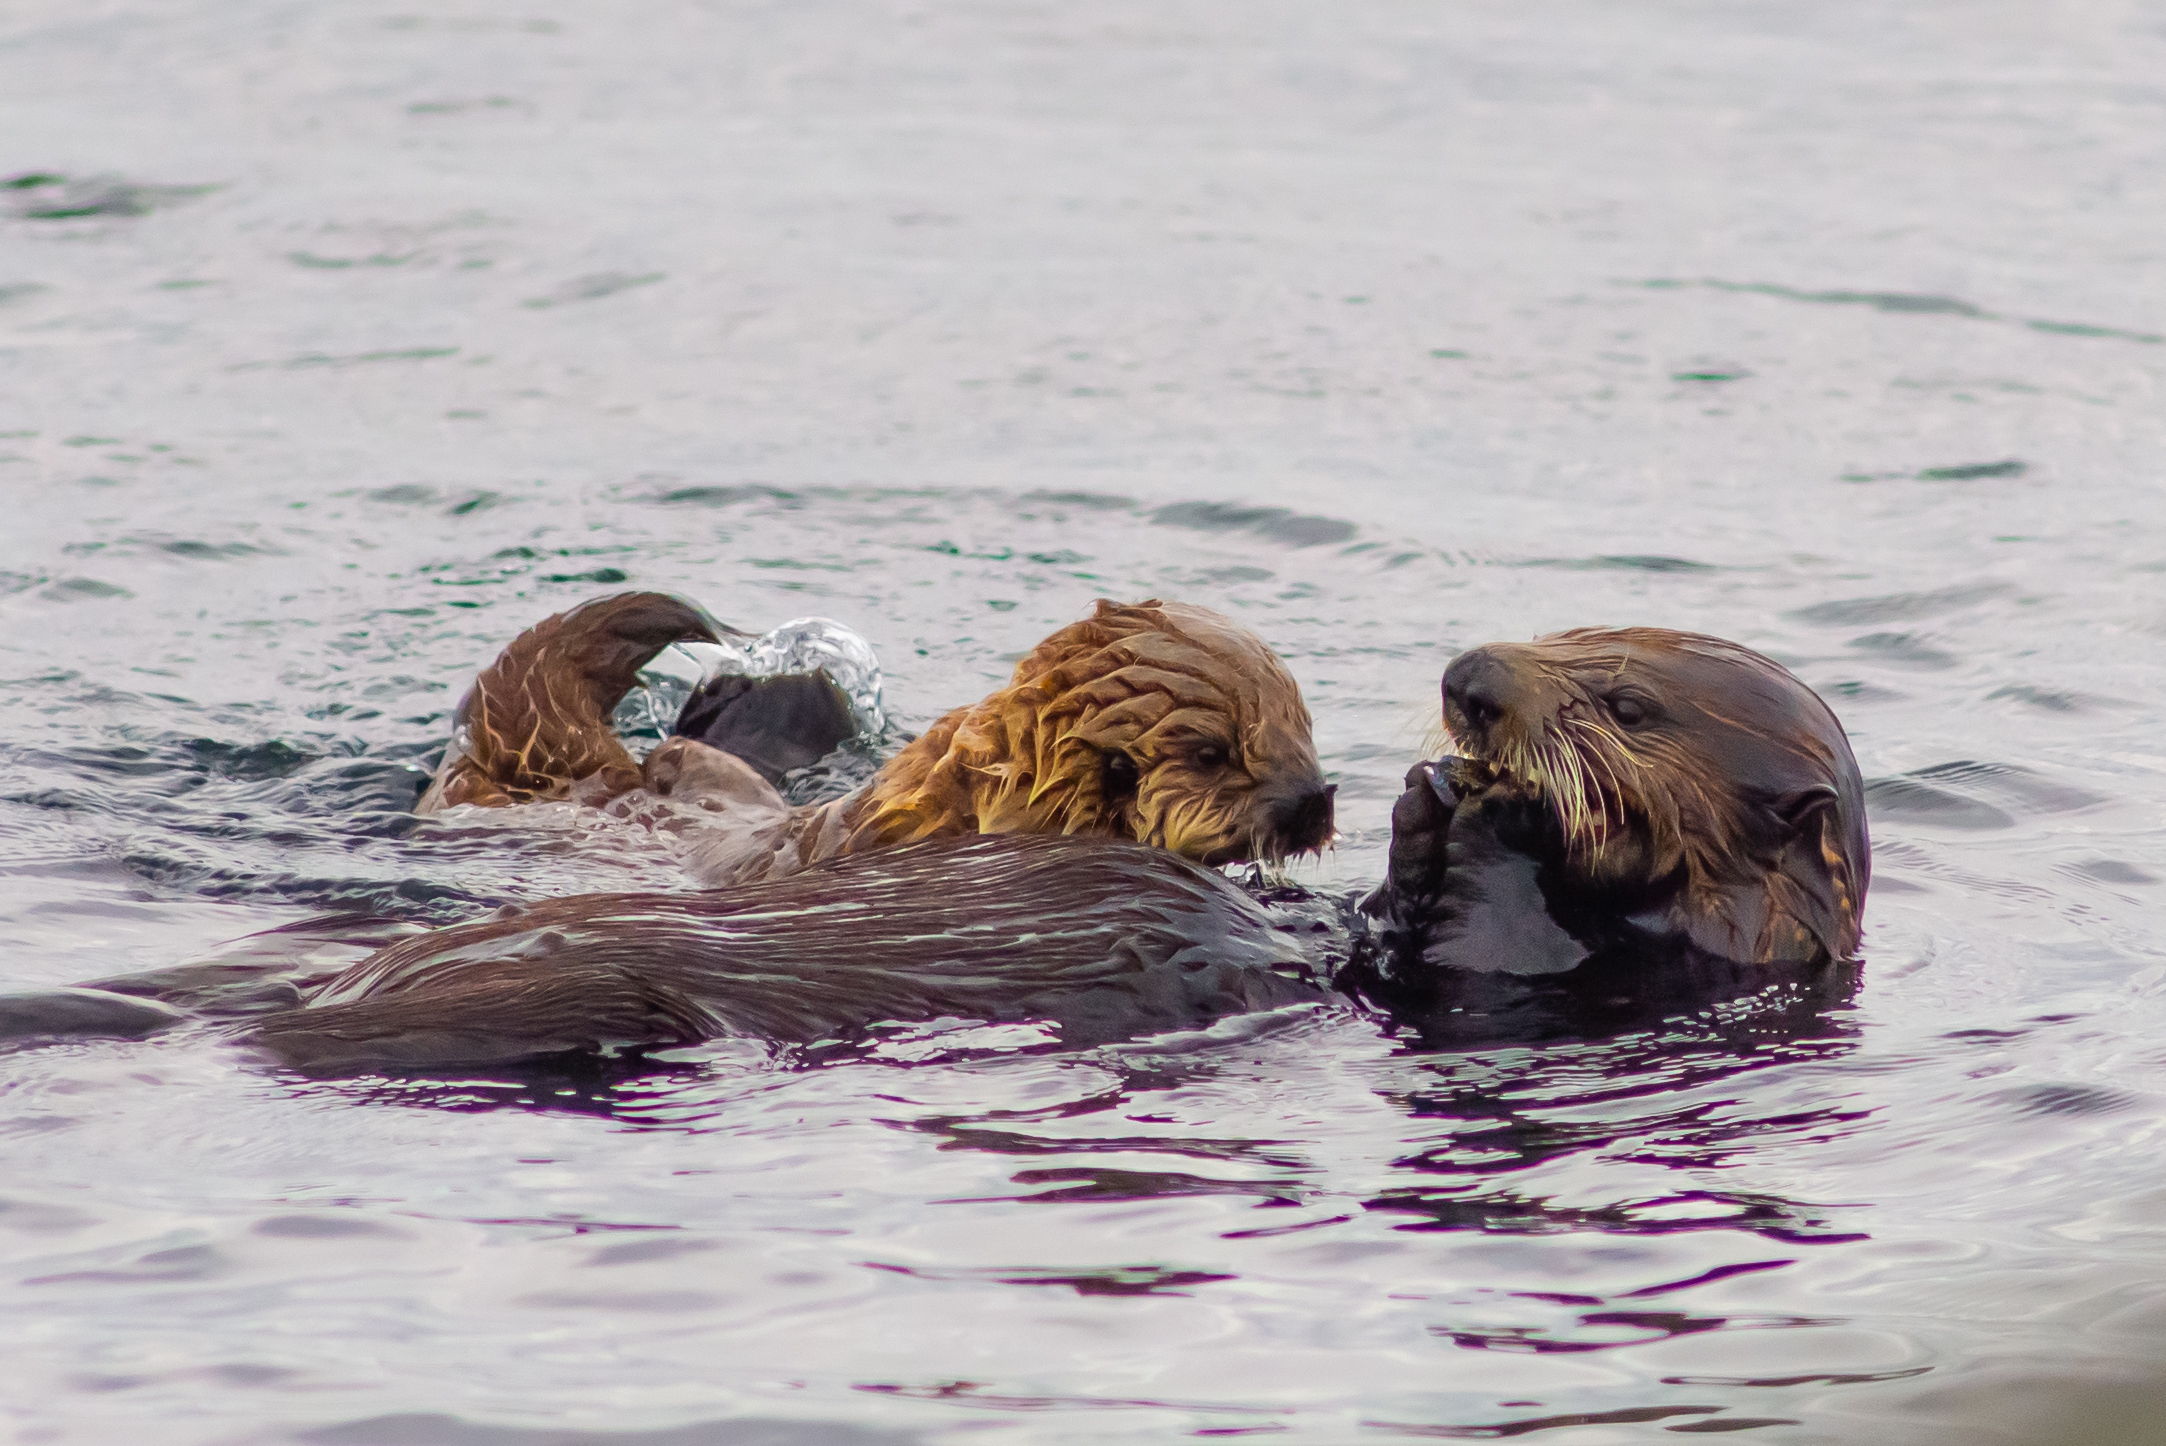 Sea otter mothers carry single pups on their belly and eat prey while lying on their back in the water. (Mike Willie/Coastal Rainforest Safaris)